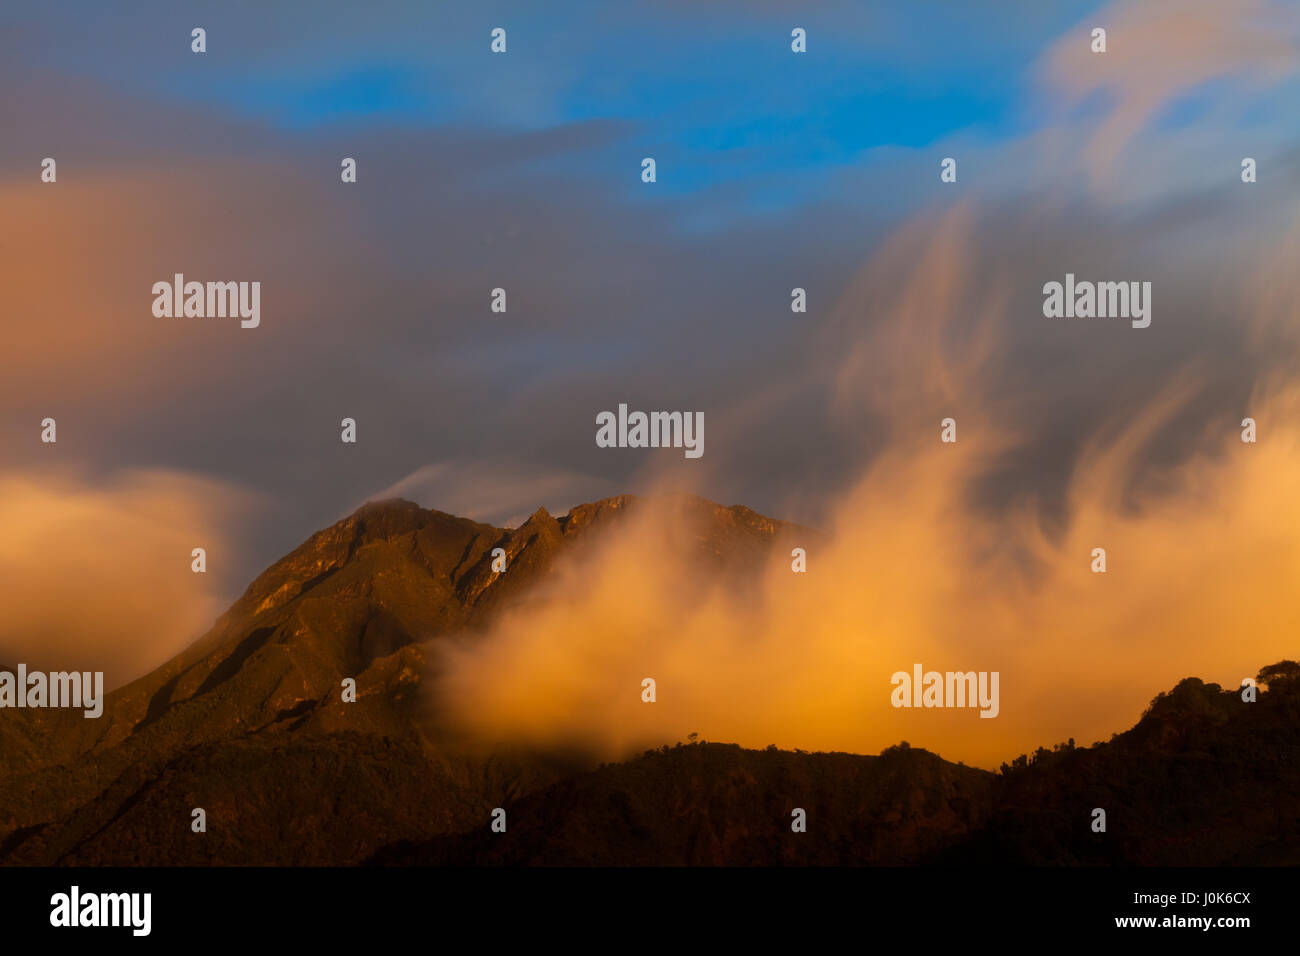 Colorful clouds at sunset in Volcan Baru National Park, Chiriqui province, Republic of Panama. - Stock Image